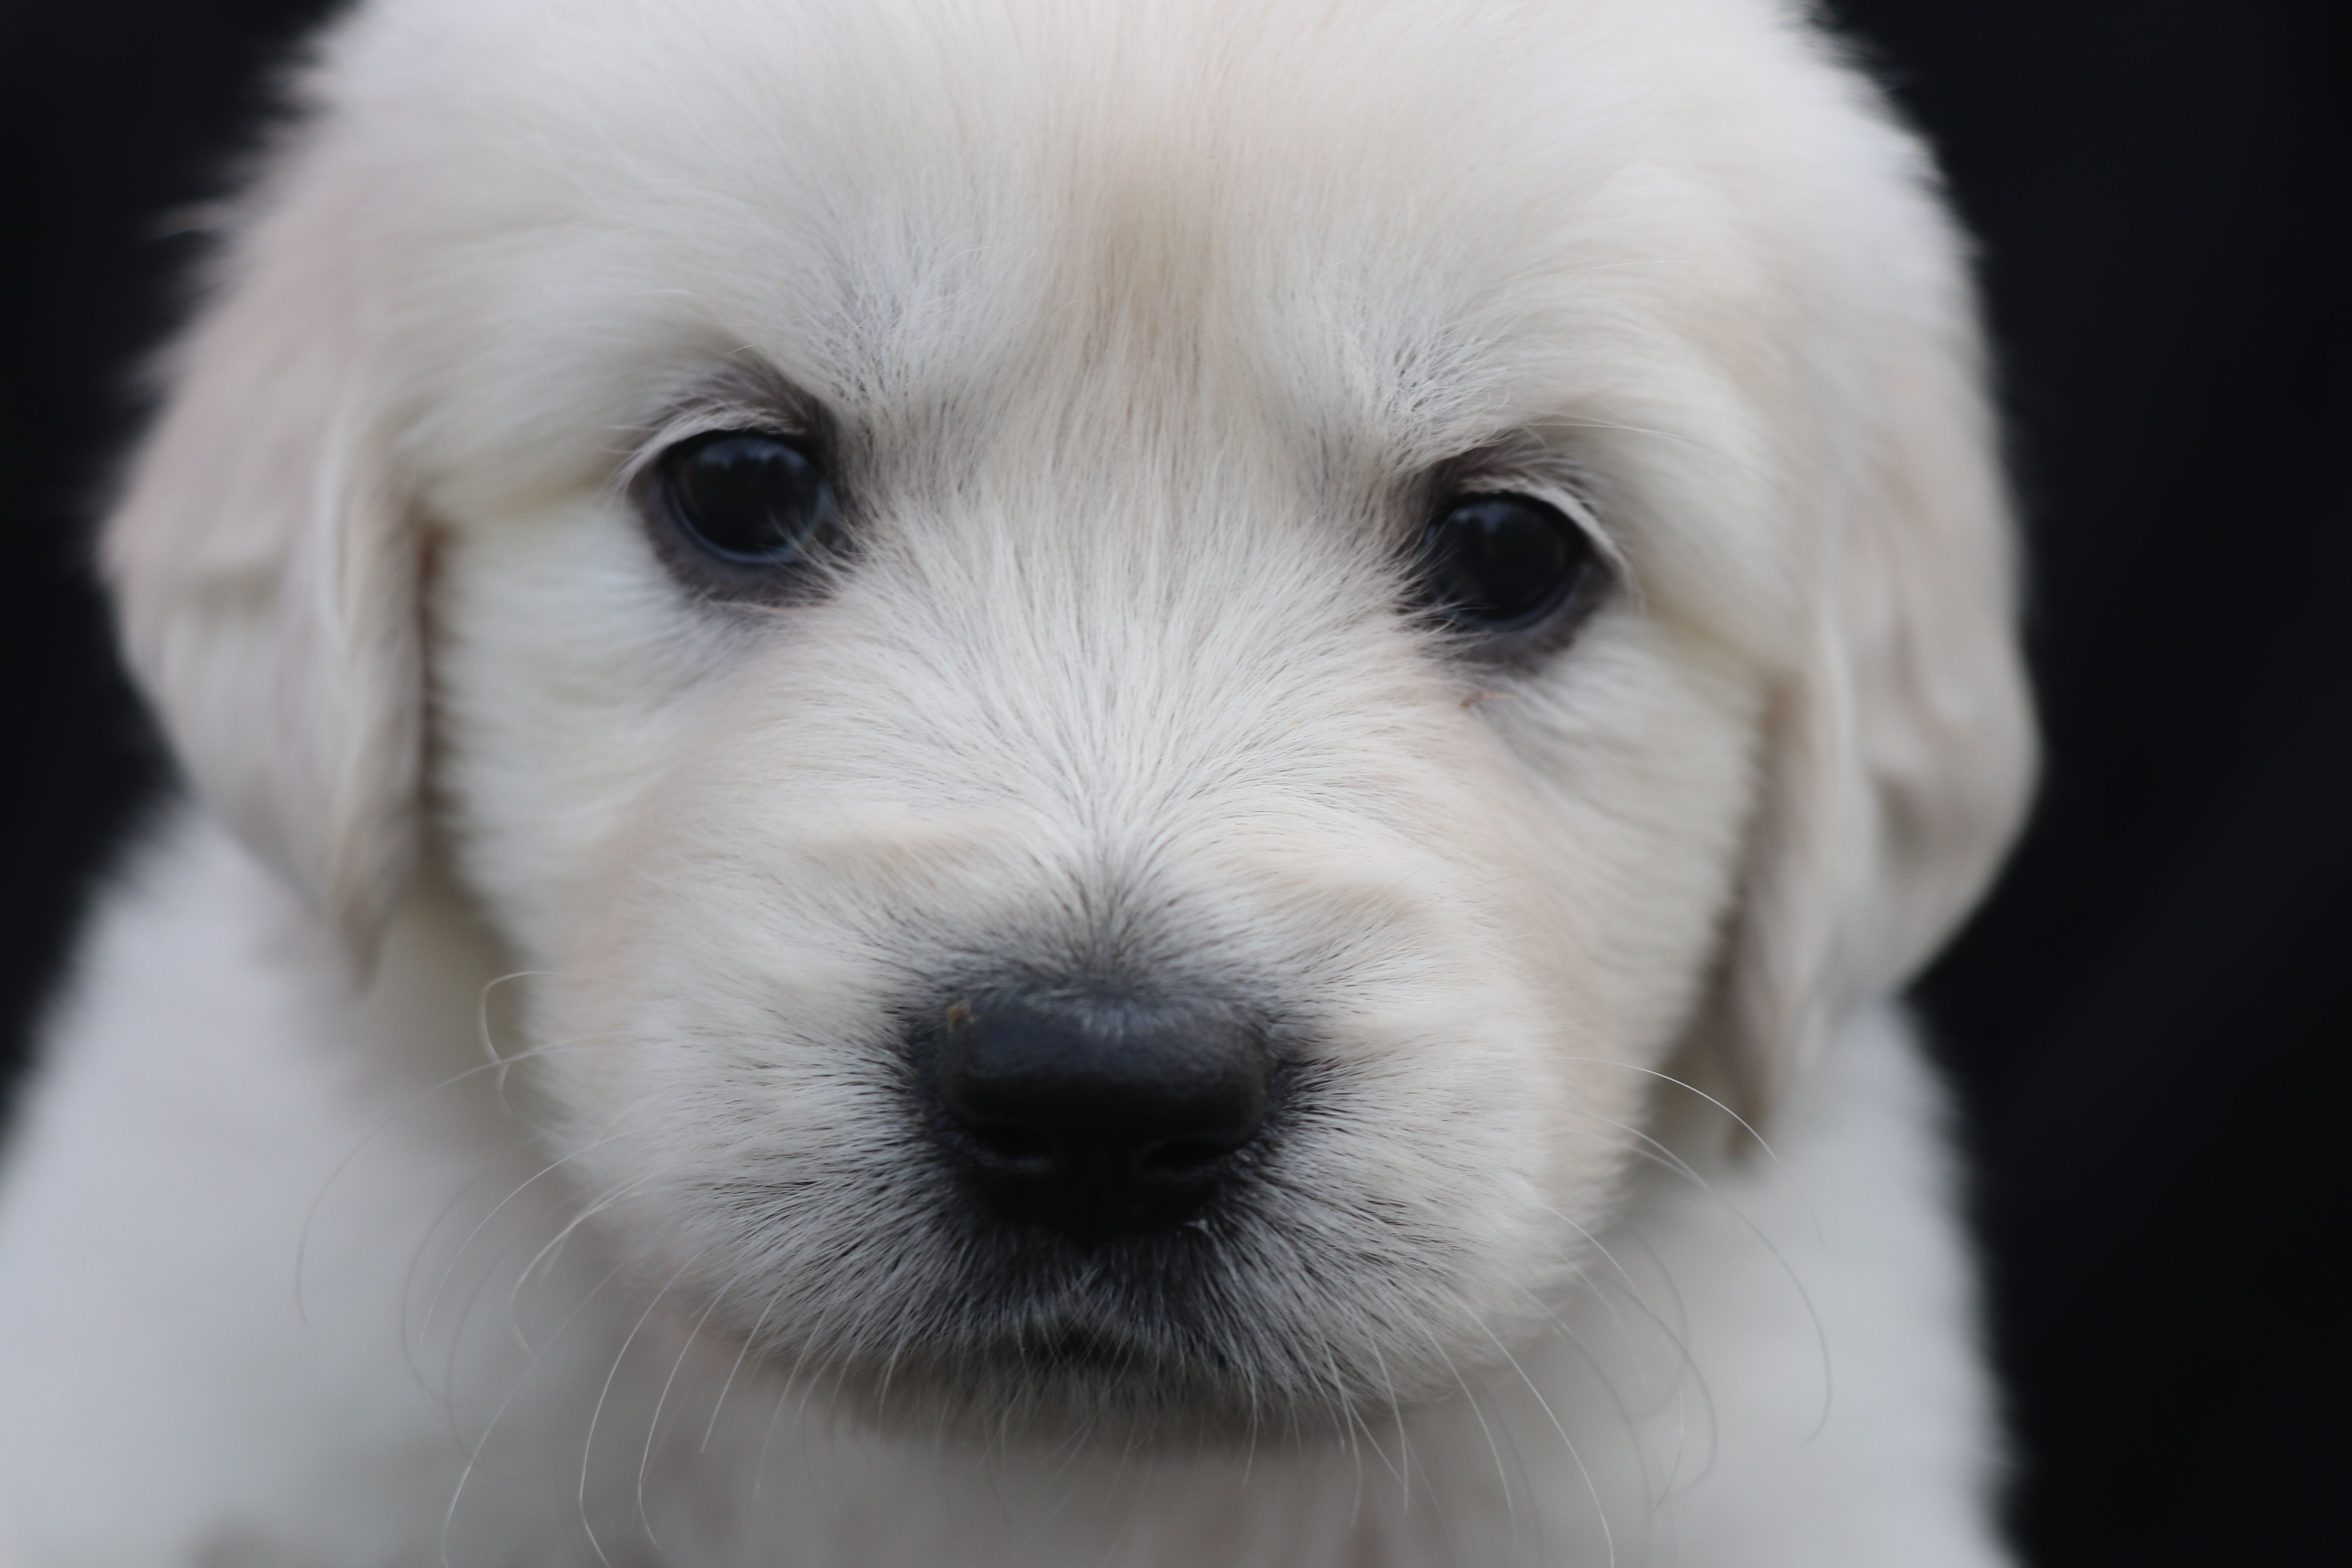 Pin By Vip Puppies Animals Dogs On Puppies For Sale English Golden Retriever Puppy Retriever Puppy Golden Retriever Puppy